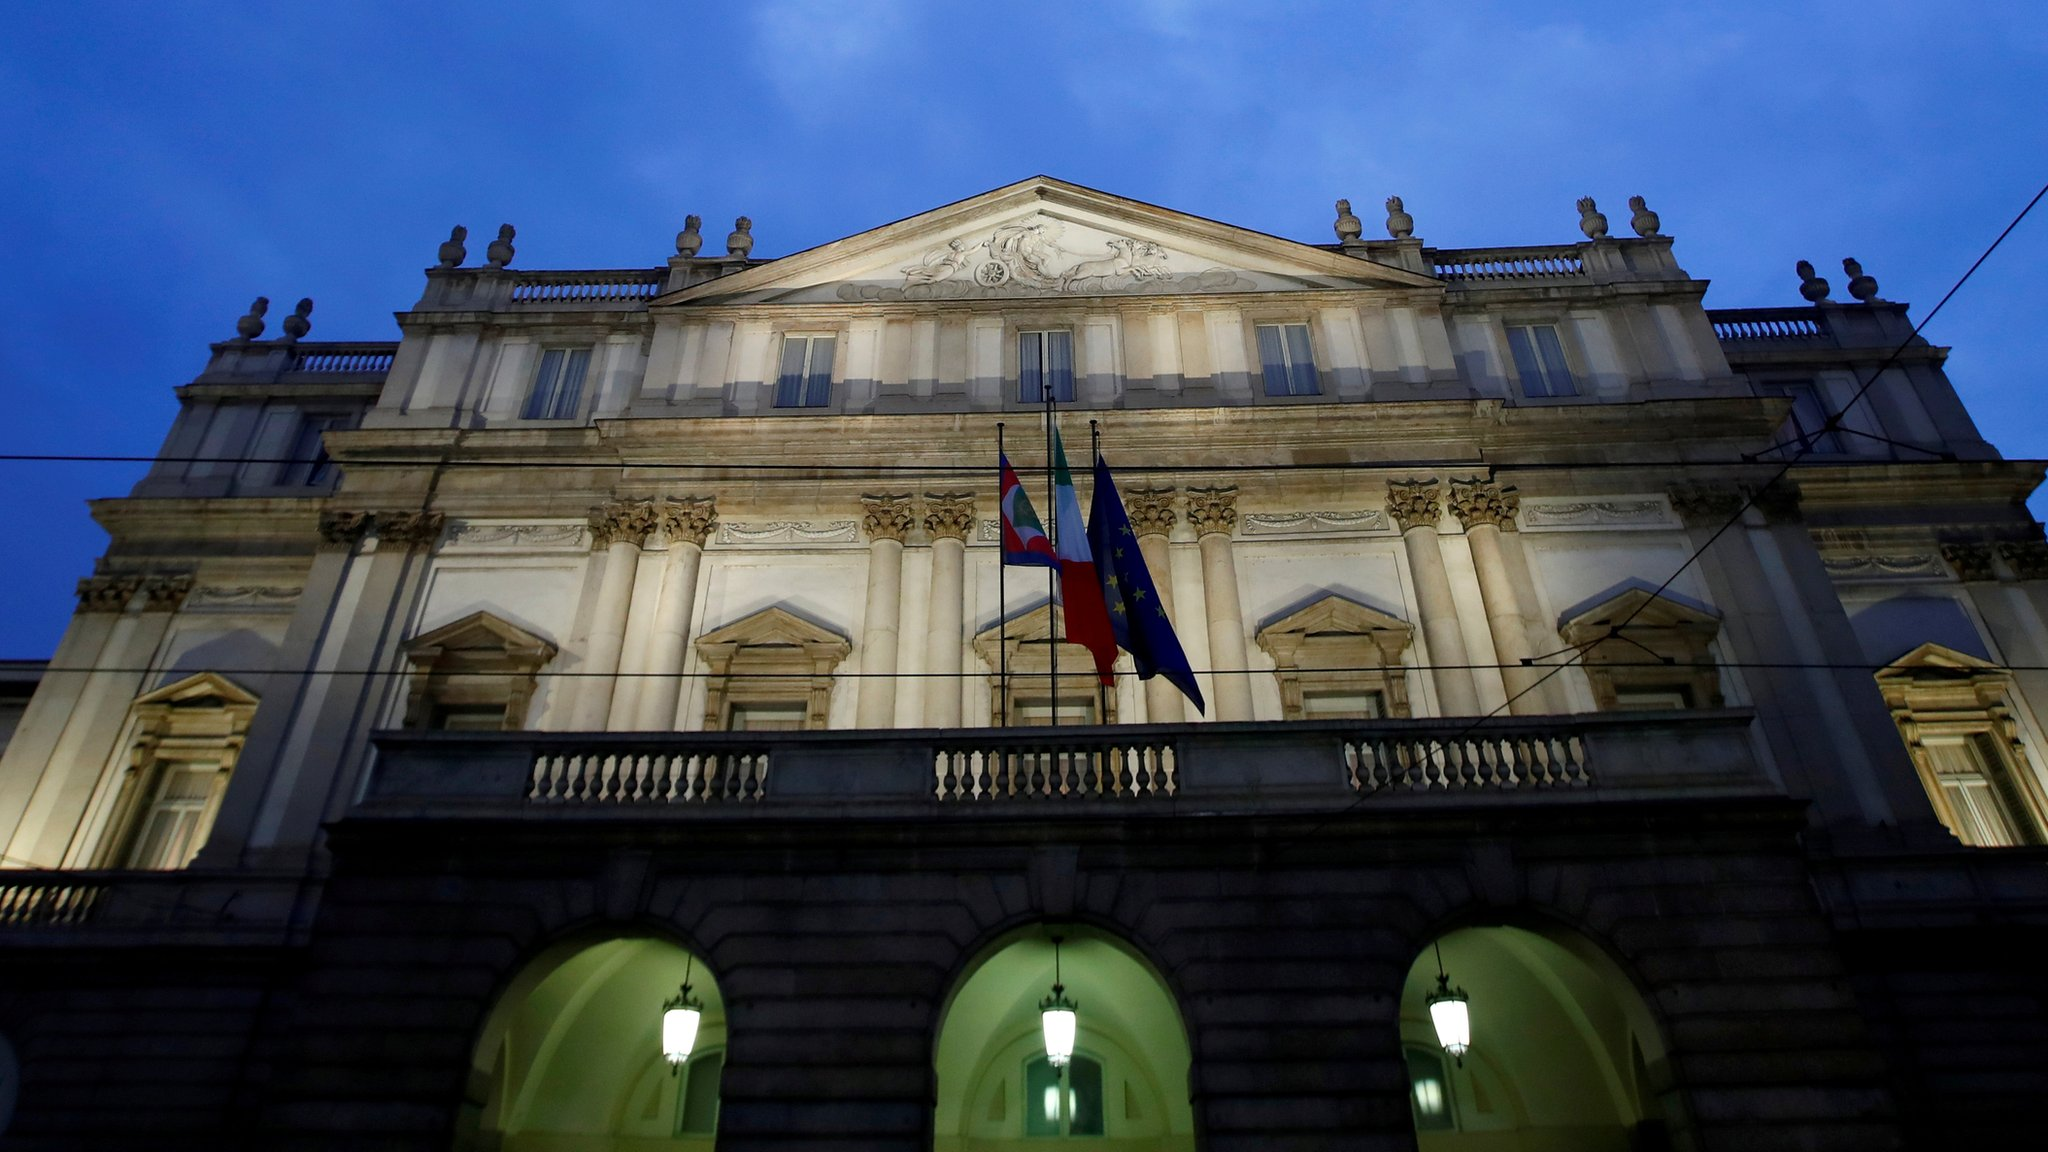 Italy's La Scala opera house to return Saudi millions